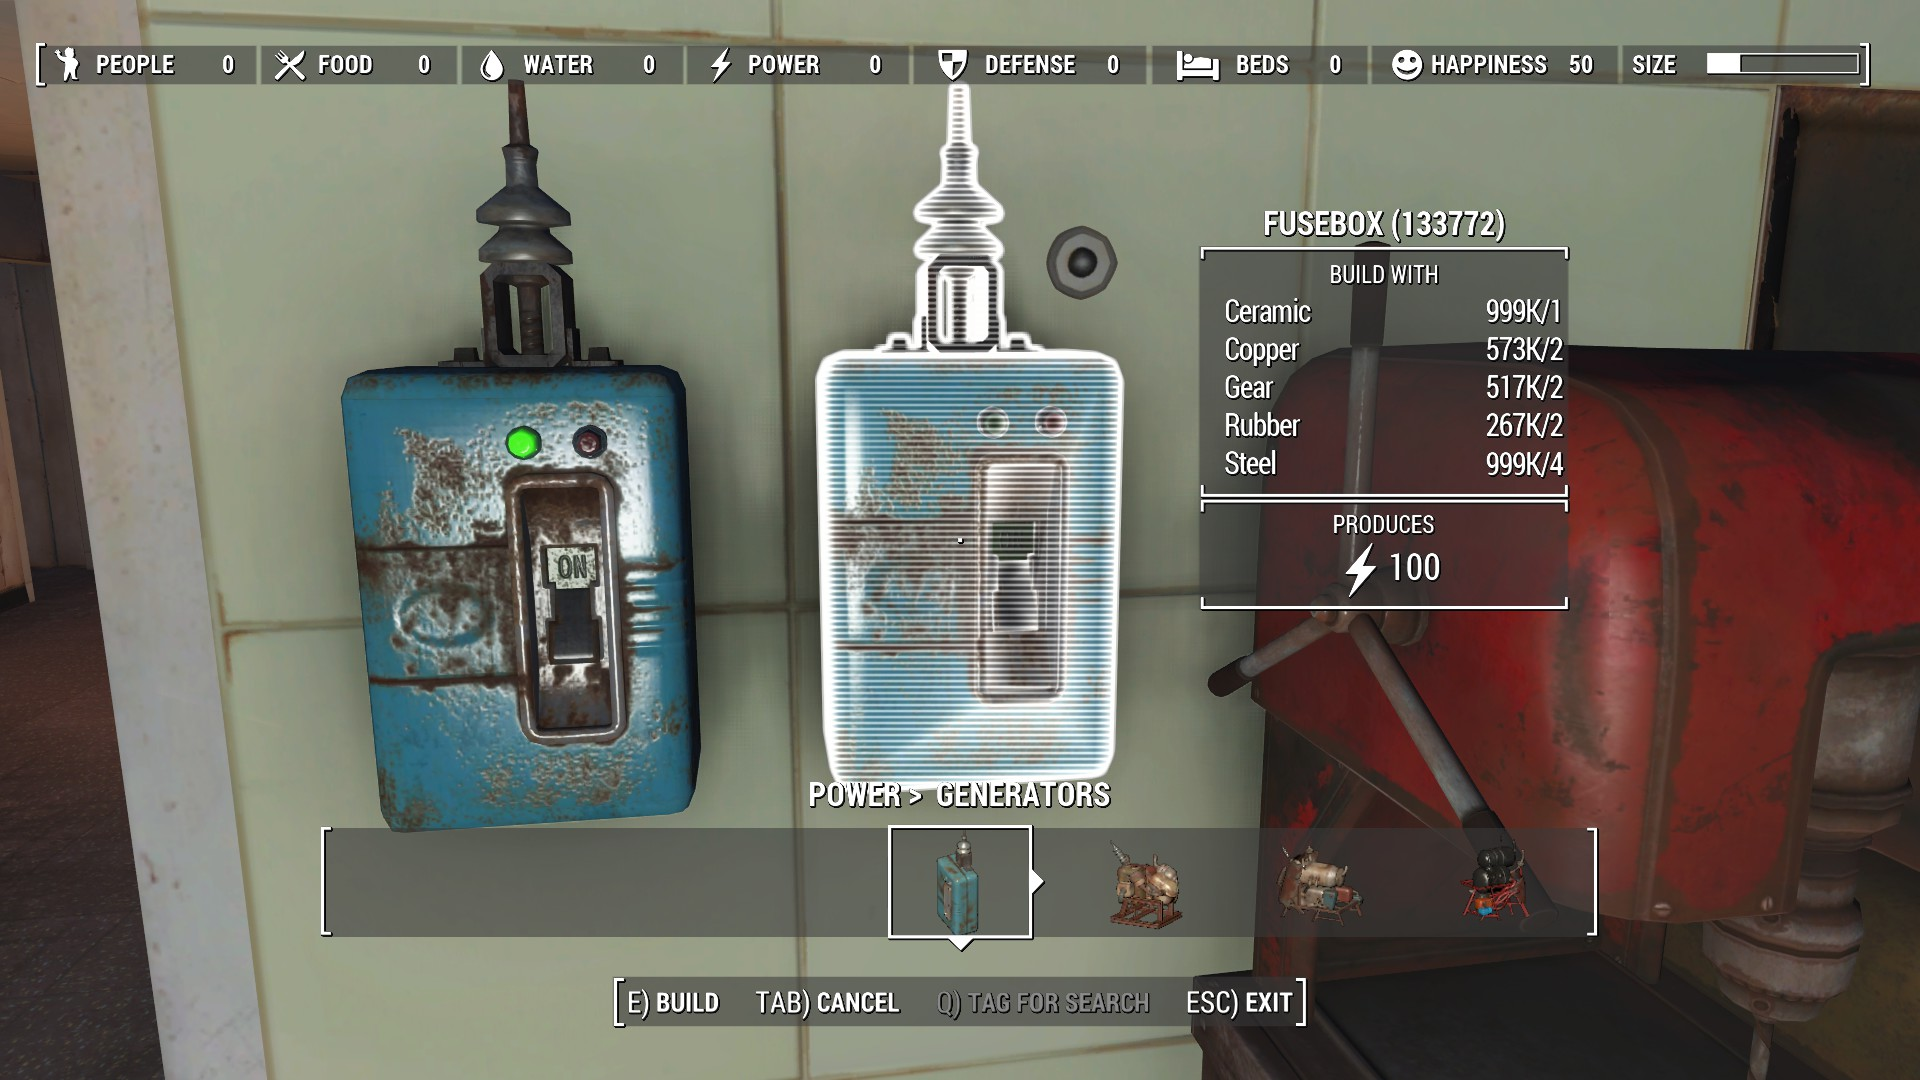 3429 0 1448747560 fallout 4 fuse box id fallout 3 xbox 360 \u2022 wiring diagram database fallout 4 fuse box lid at aneh.co